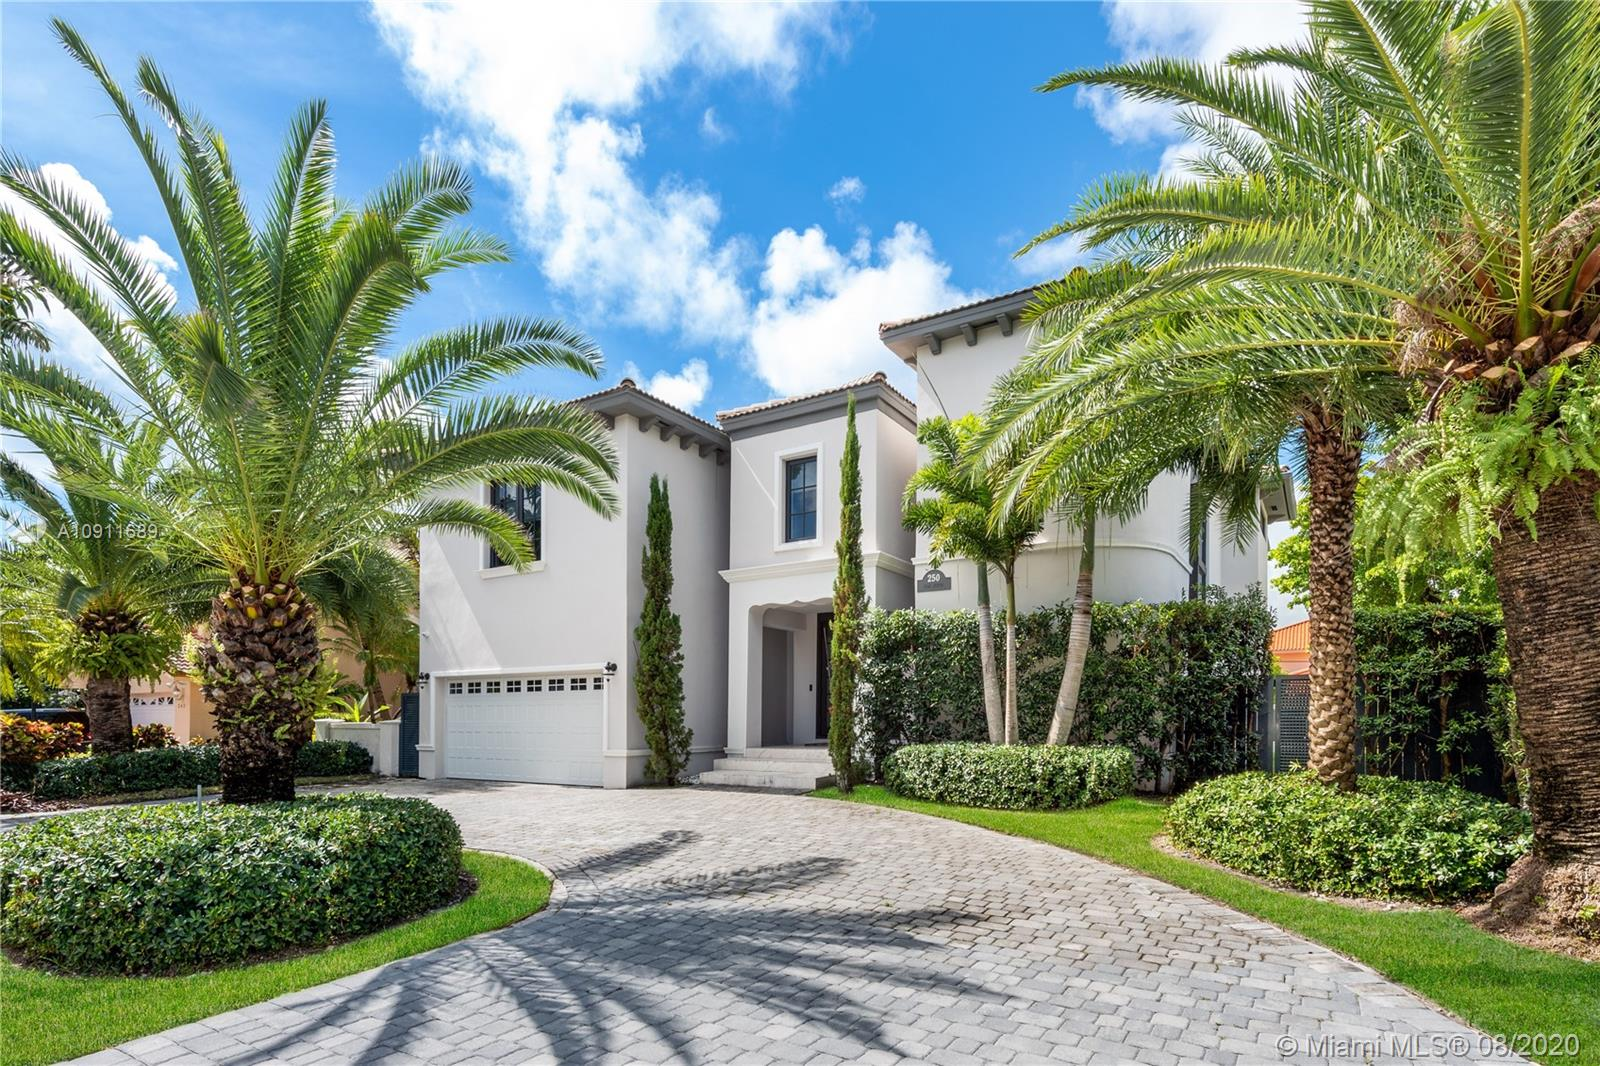 Details for 250 Palm Ave, Miami Beach, FL 33139